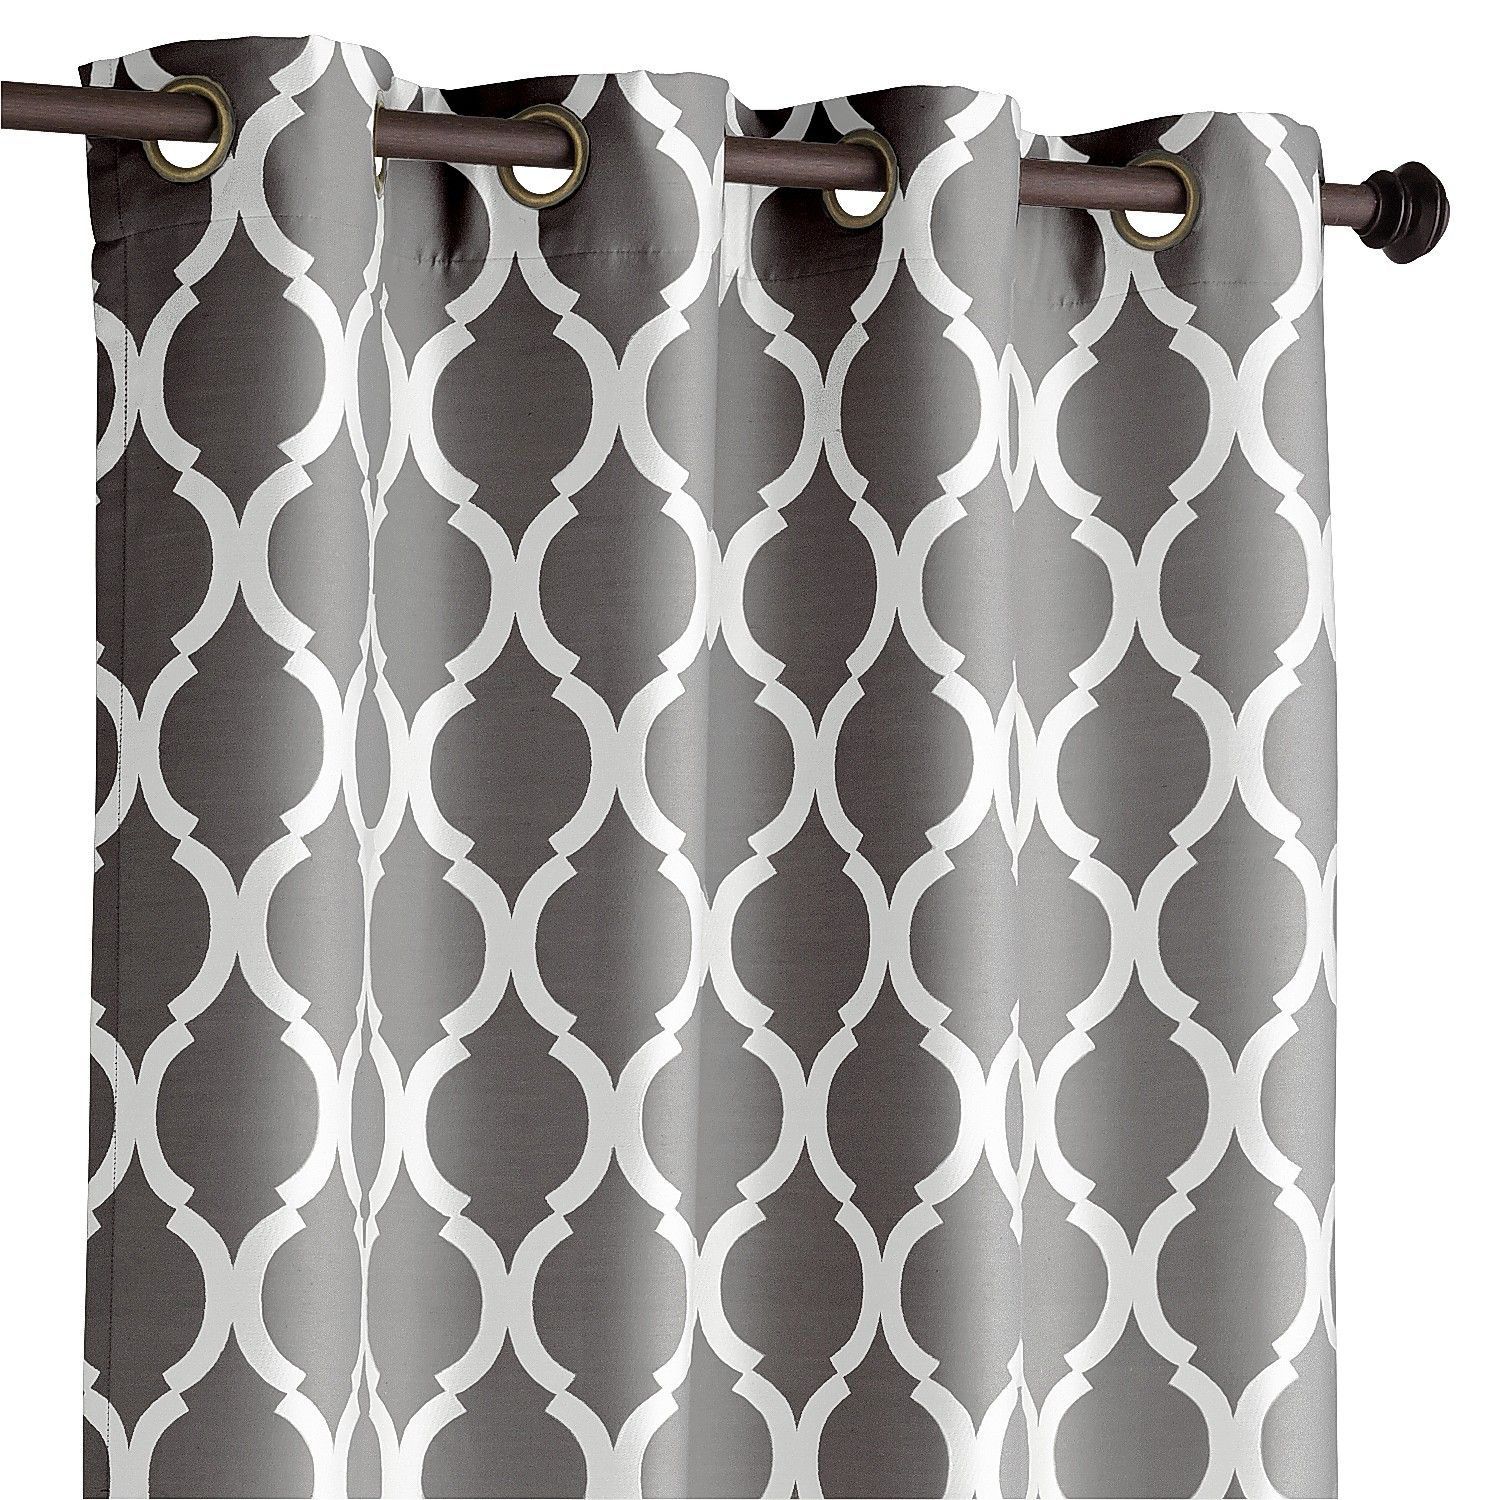 Woven Jacquard Construction Highlights The Soft Geometric Pattern Of This Classic Design Fully Lined And A Breeze To Hang With Grommet Top Our Curtain